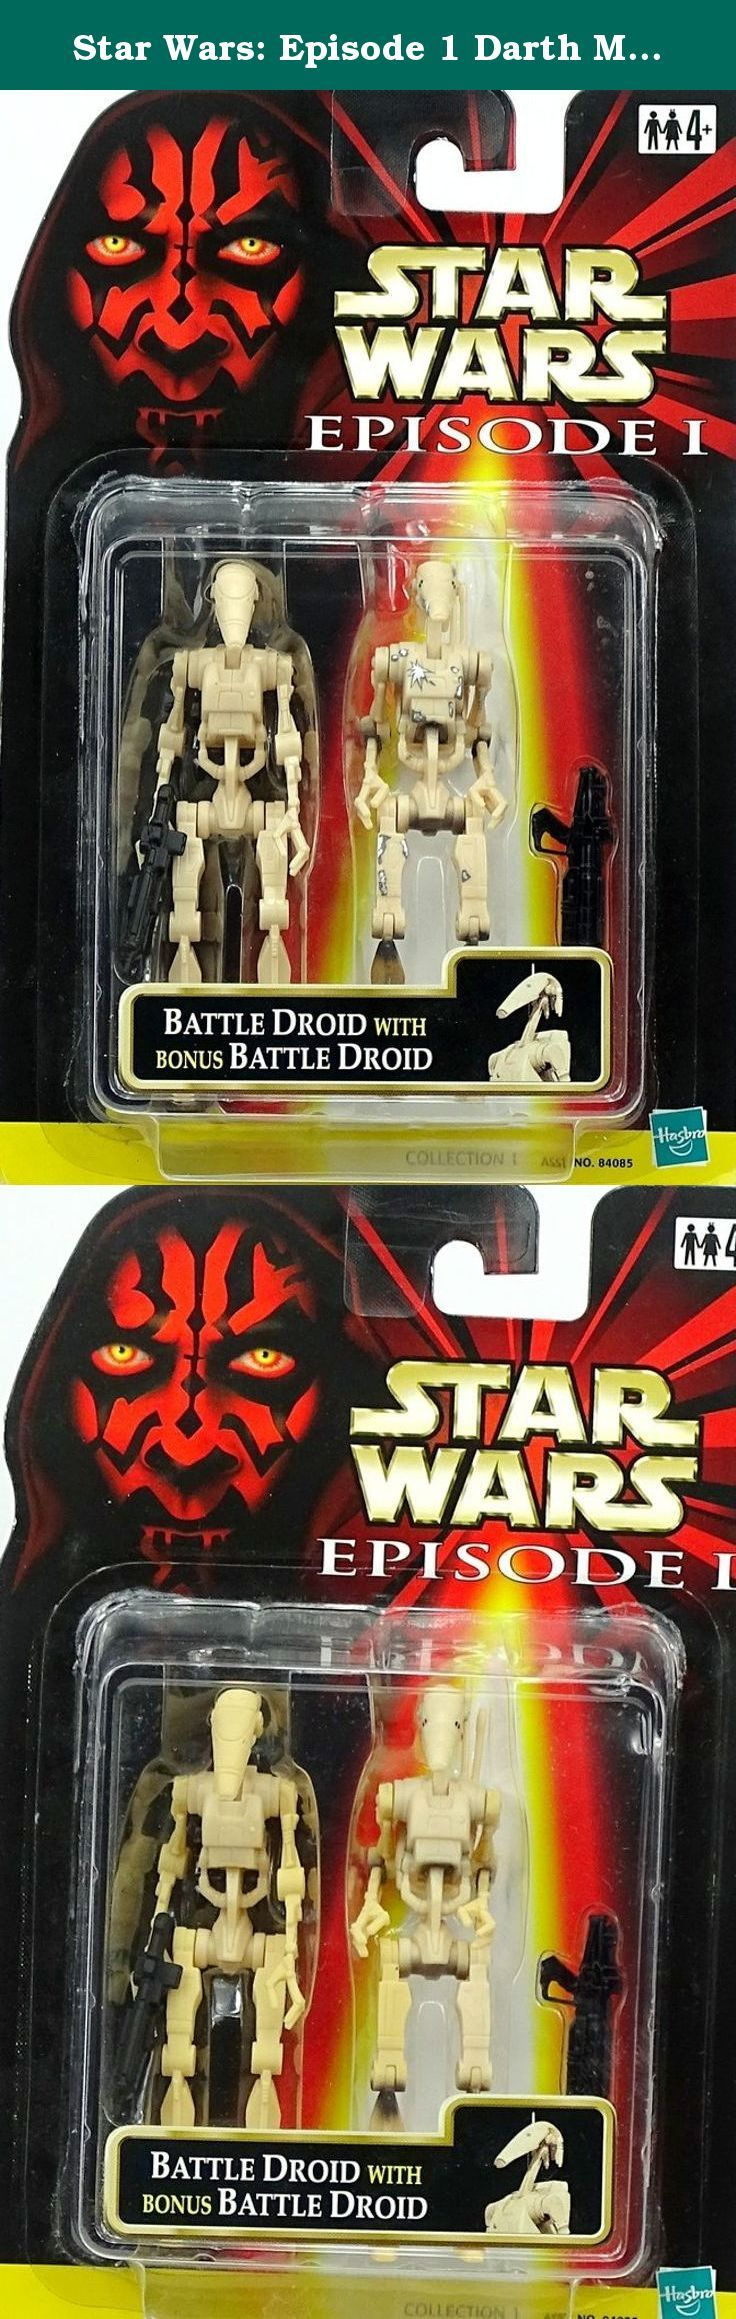 Star Wars: Episode 1 Darth Maul with Bonus Pit Droid Action Figure. Part of a repackaged figure wave that was distributed internationally, these sets were comprised of main characters from Episode I paired with either a battle droid or pit droid. This particular set featured the Sith Lord version of the enigmatic Darth Maul (who looks like he has heartburn) paired with a white Pit Droid. The figures are identical to the single packed US versions and come with the same accessories; however...